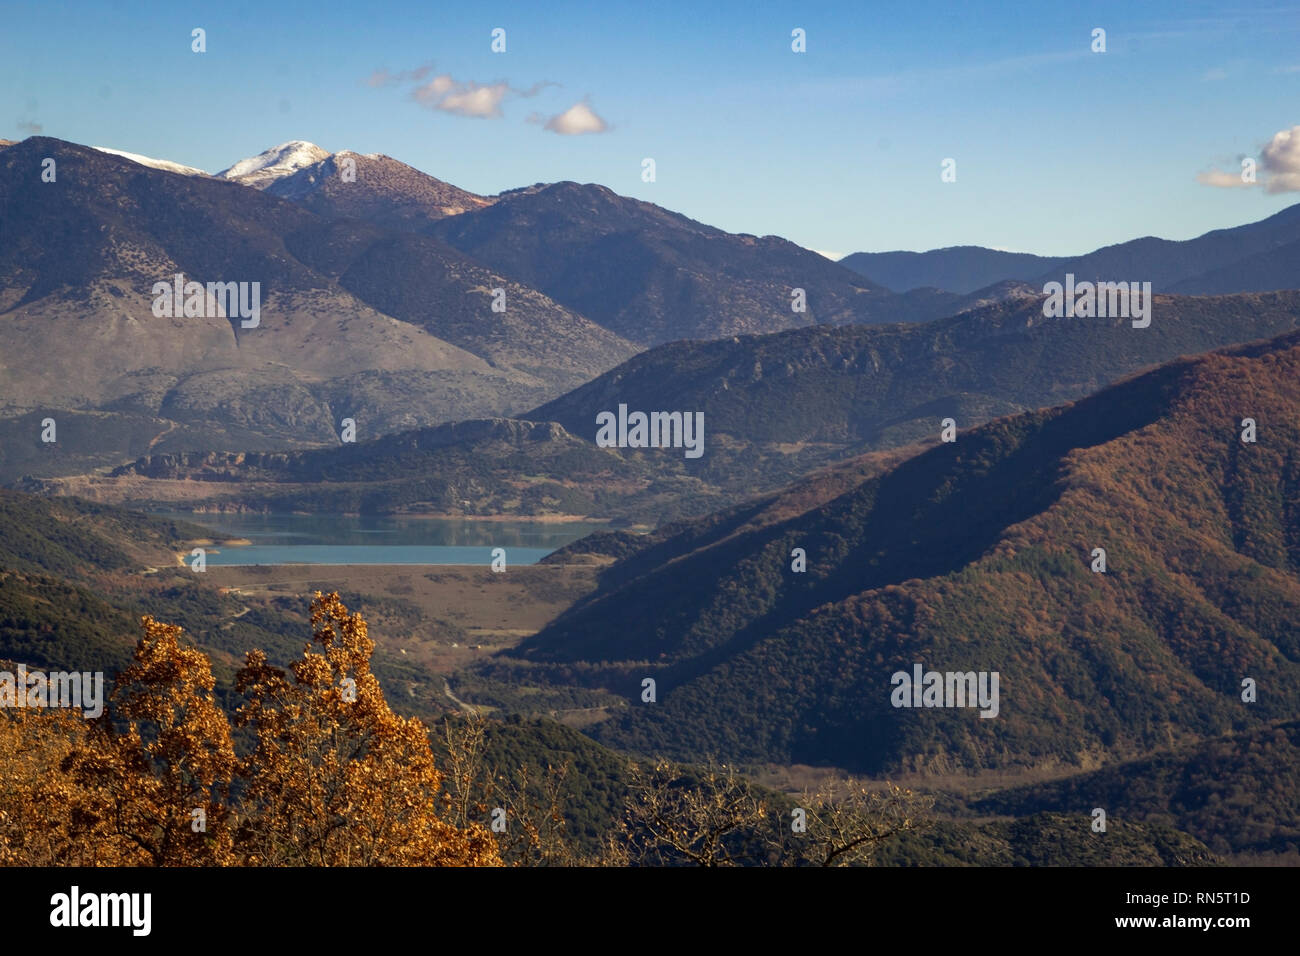 Artificial Lake Mornos from above, surrounded by the Vardousia Mountains in Central Greece. - Stock Image